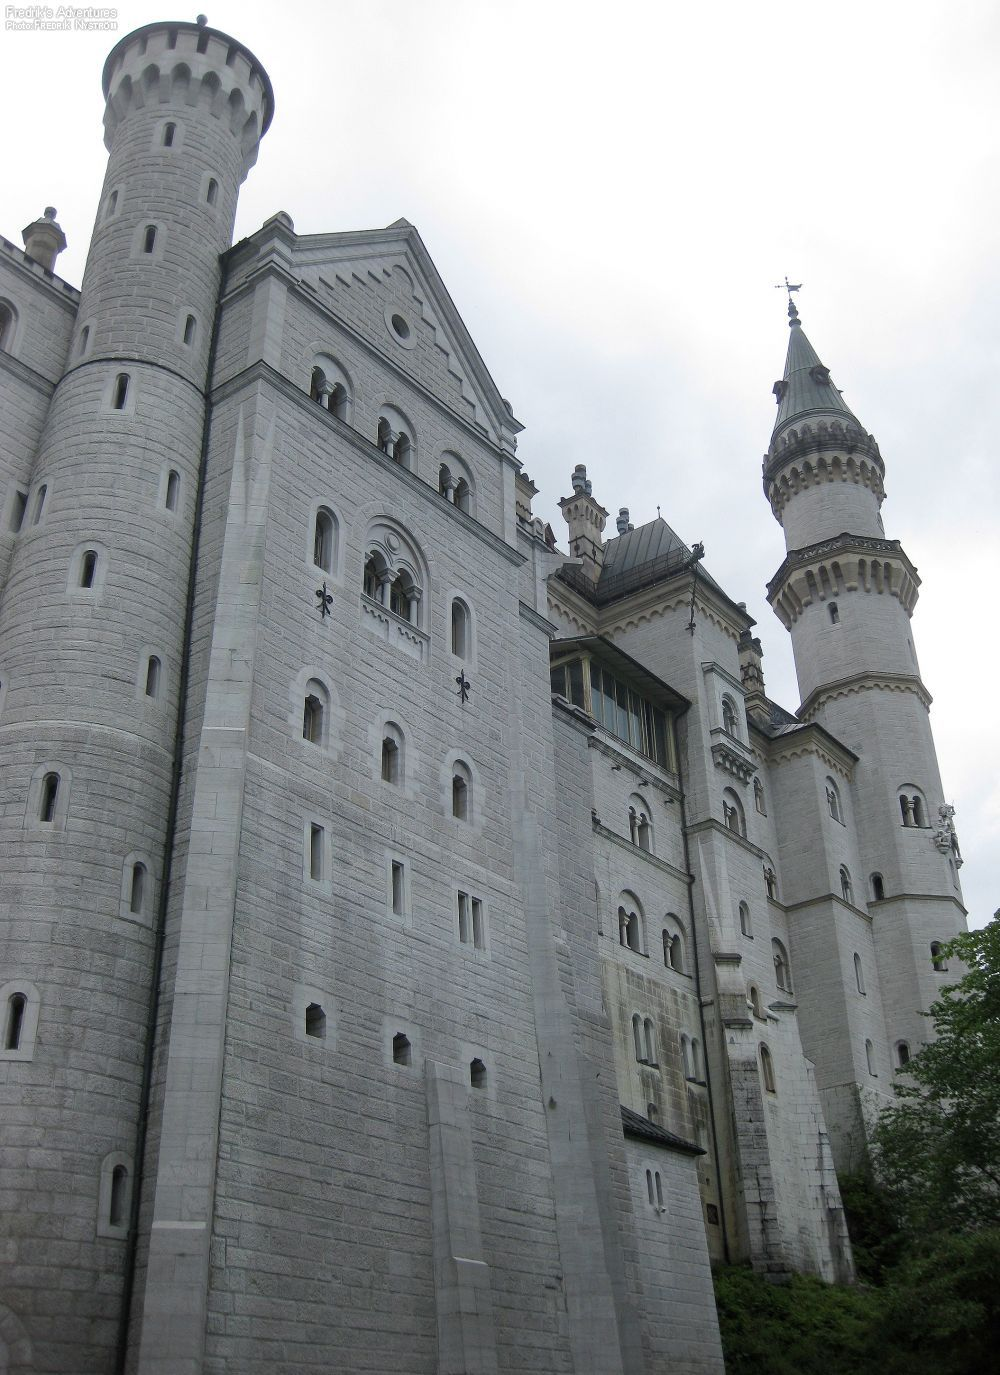 Facade Of Schloss Neuschwanstein Fussen Germany This Was The Home Of King Ludwig Ii A 19th Century Romanesque Castle Impressive S Ludwig Neuschwanstein